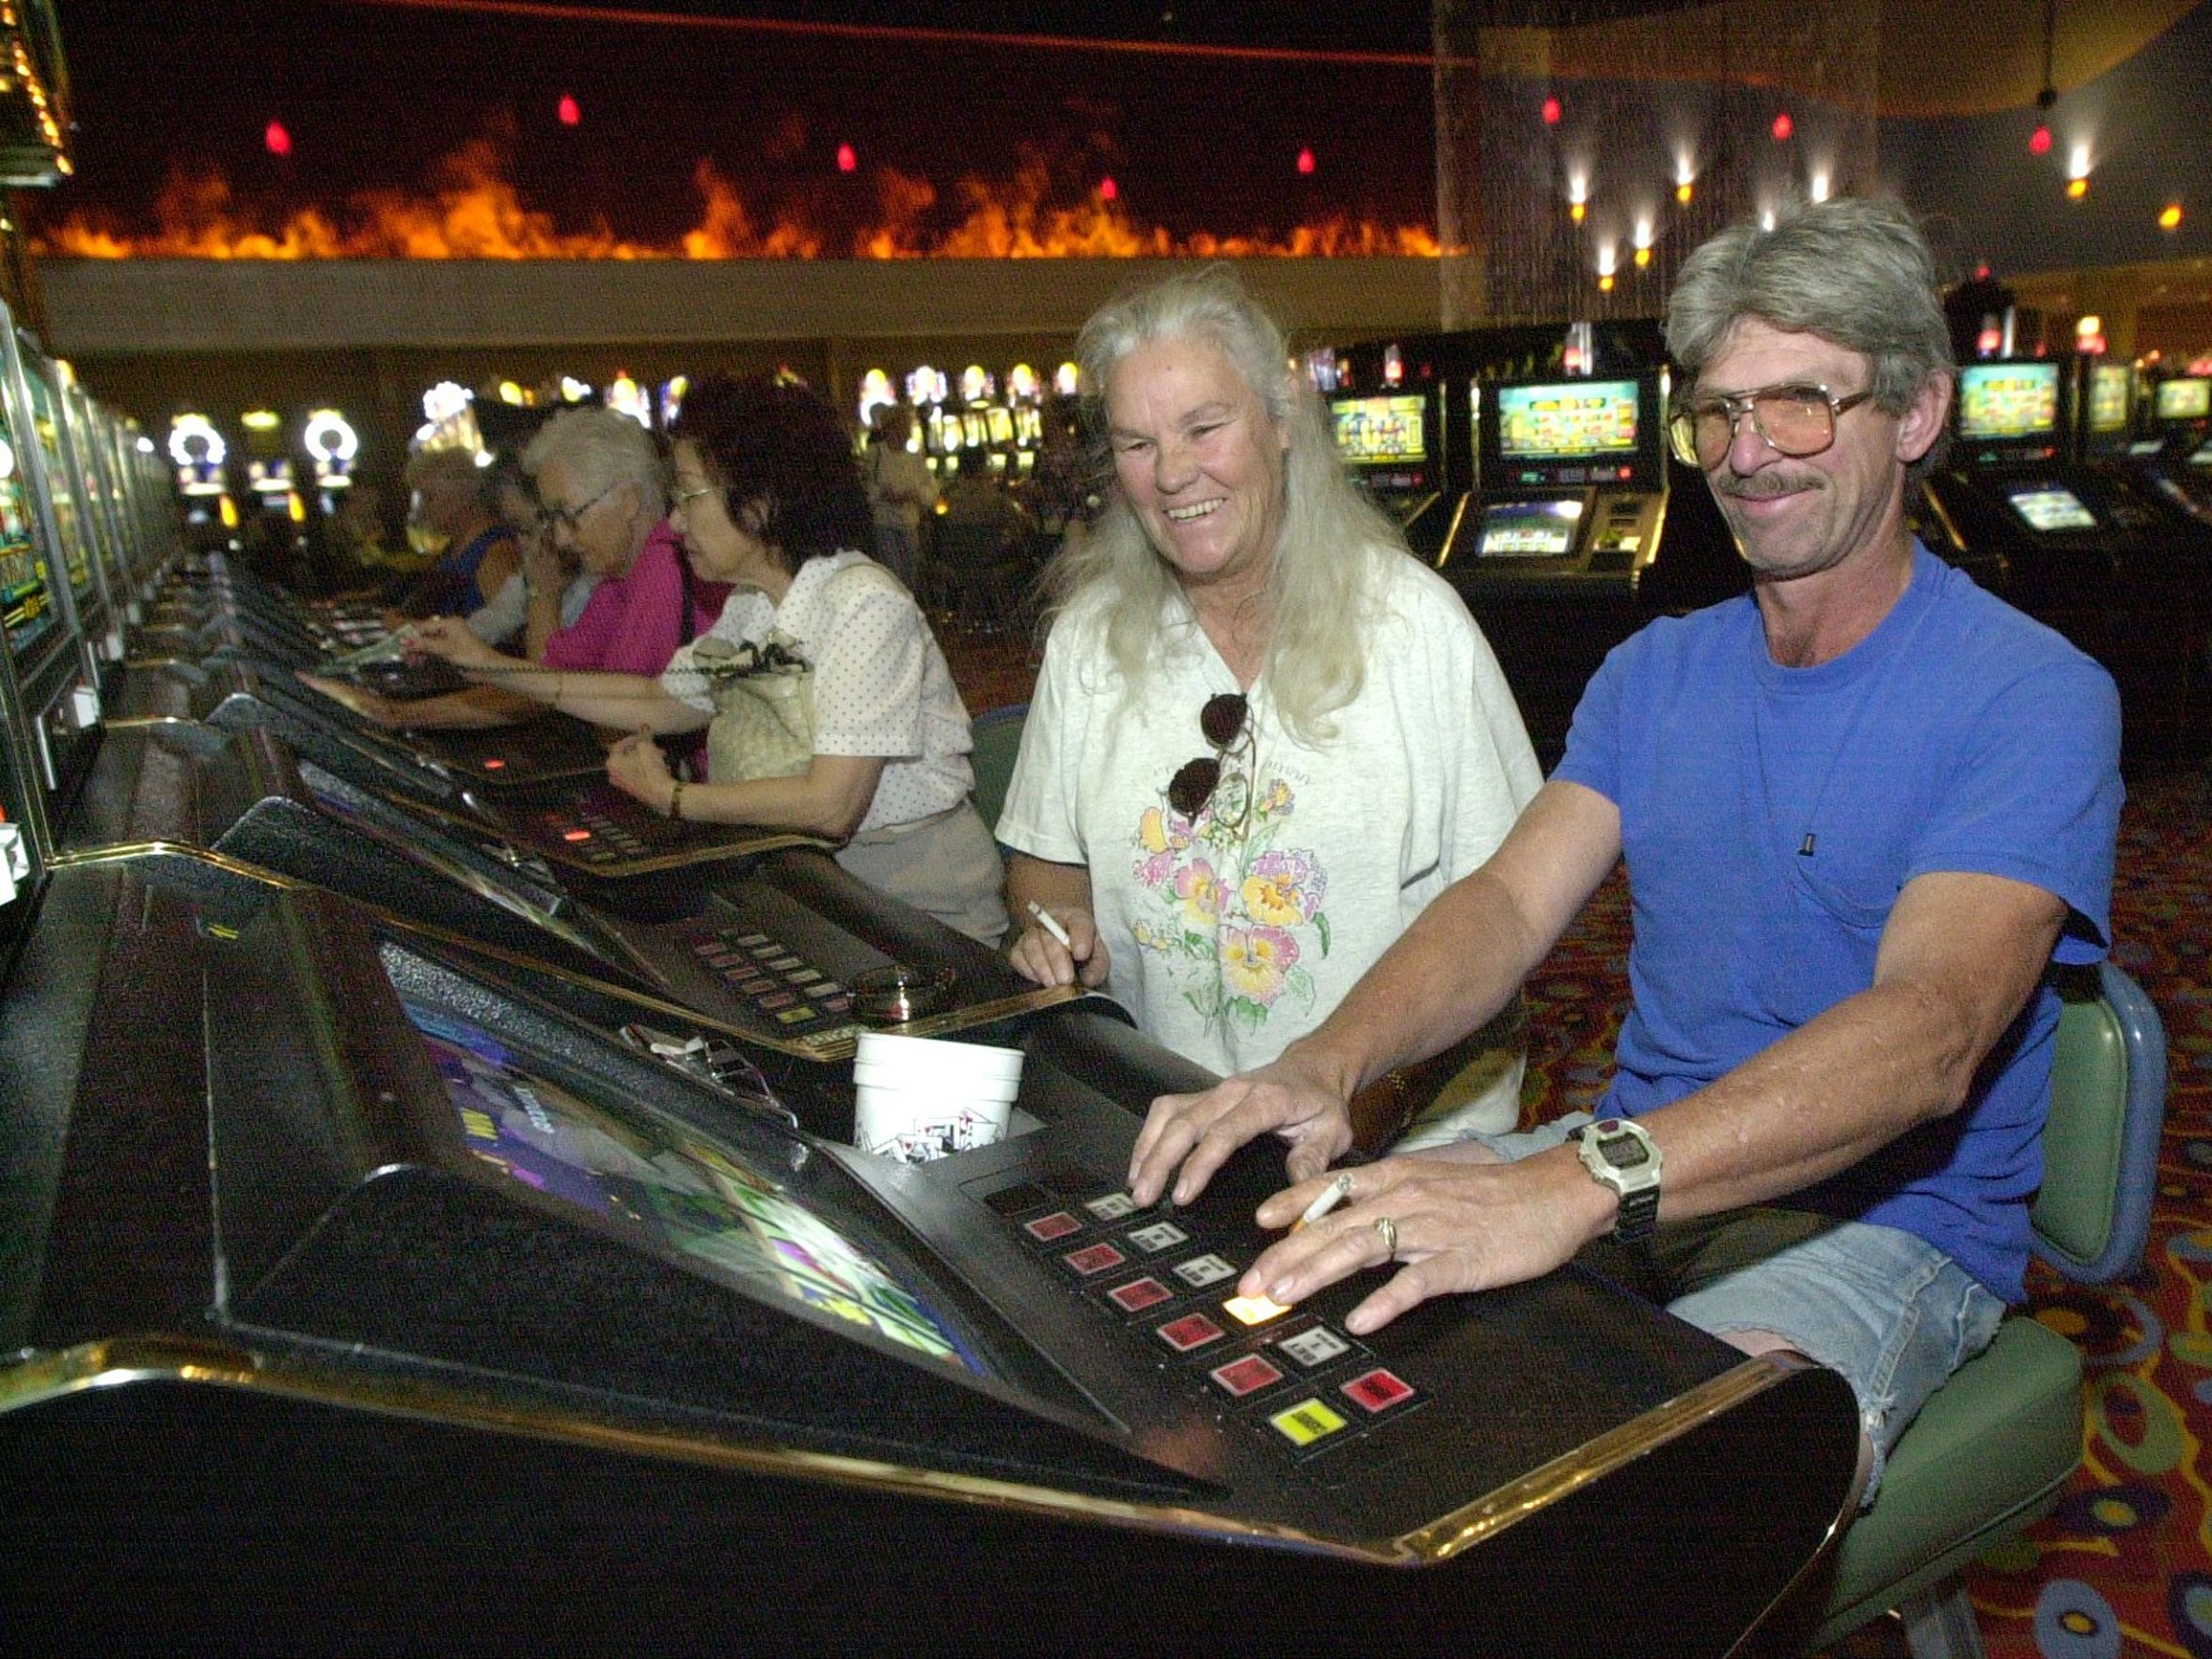 Mary and Jim Spivey of Florida try their luck on the slot machines at Trump 29 Casino in Coachella.